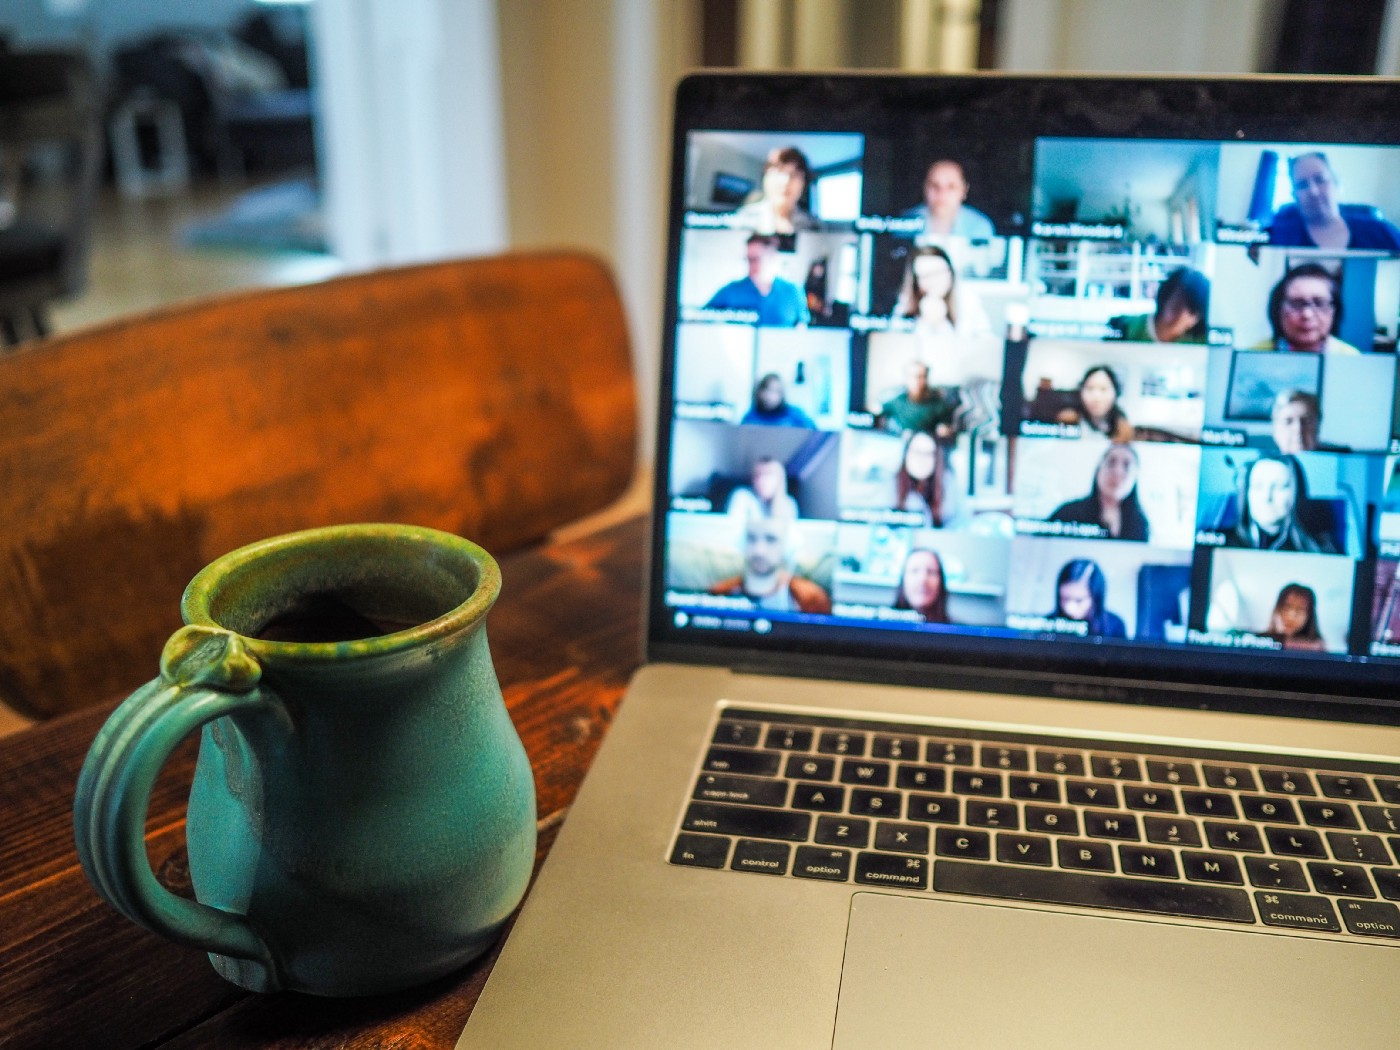 a picture of a laptop with a coffee mug sitting next to it.